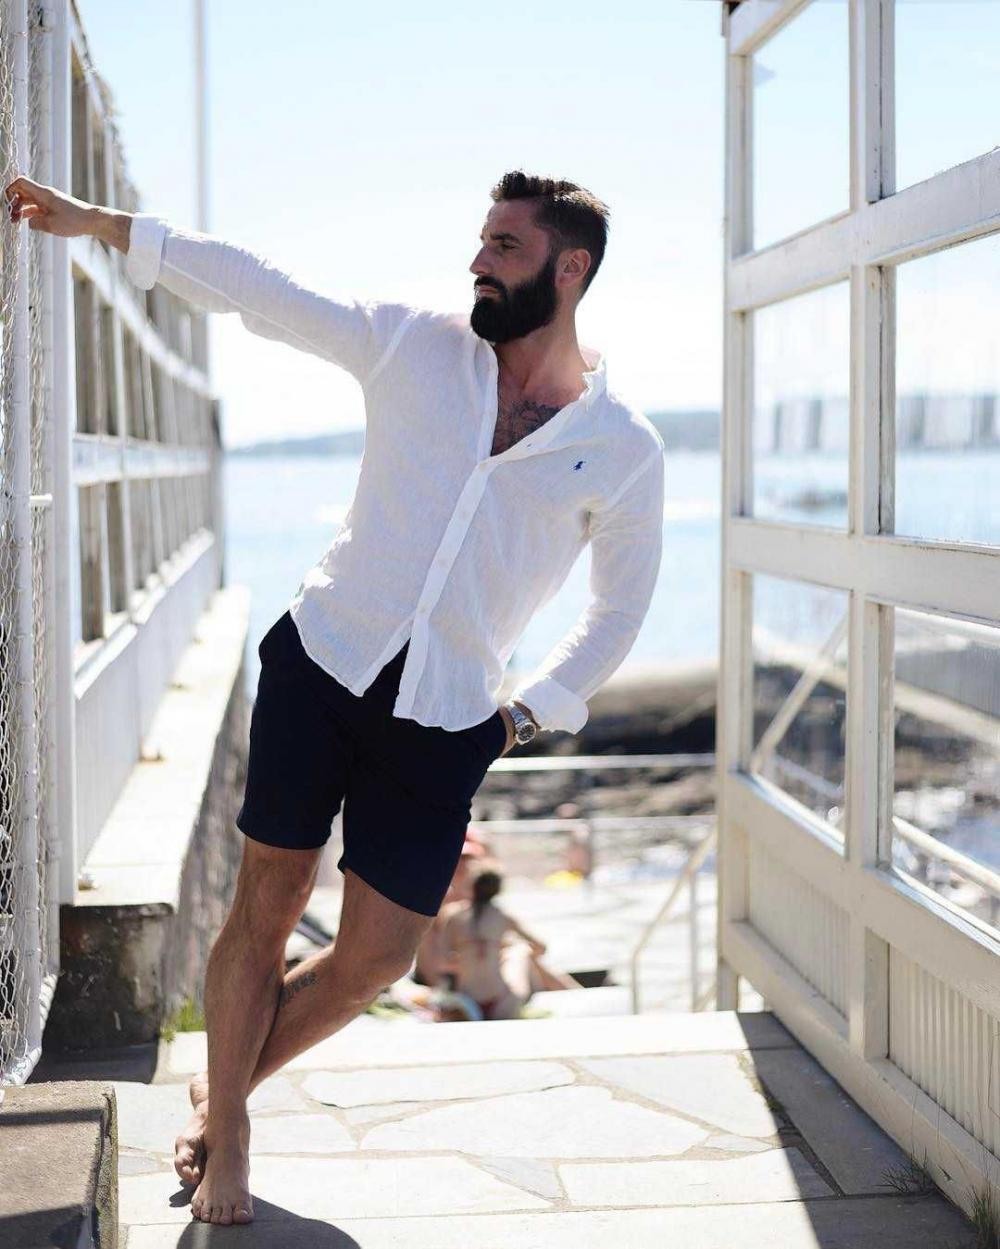 A classic combination of white shirt and black shorts - your perfect outfit for this summer